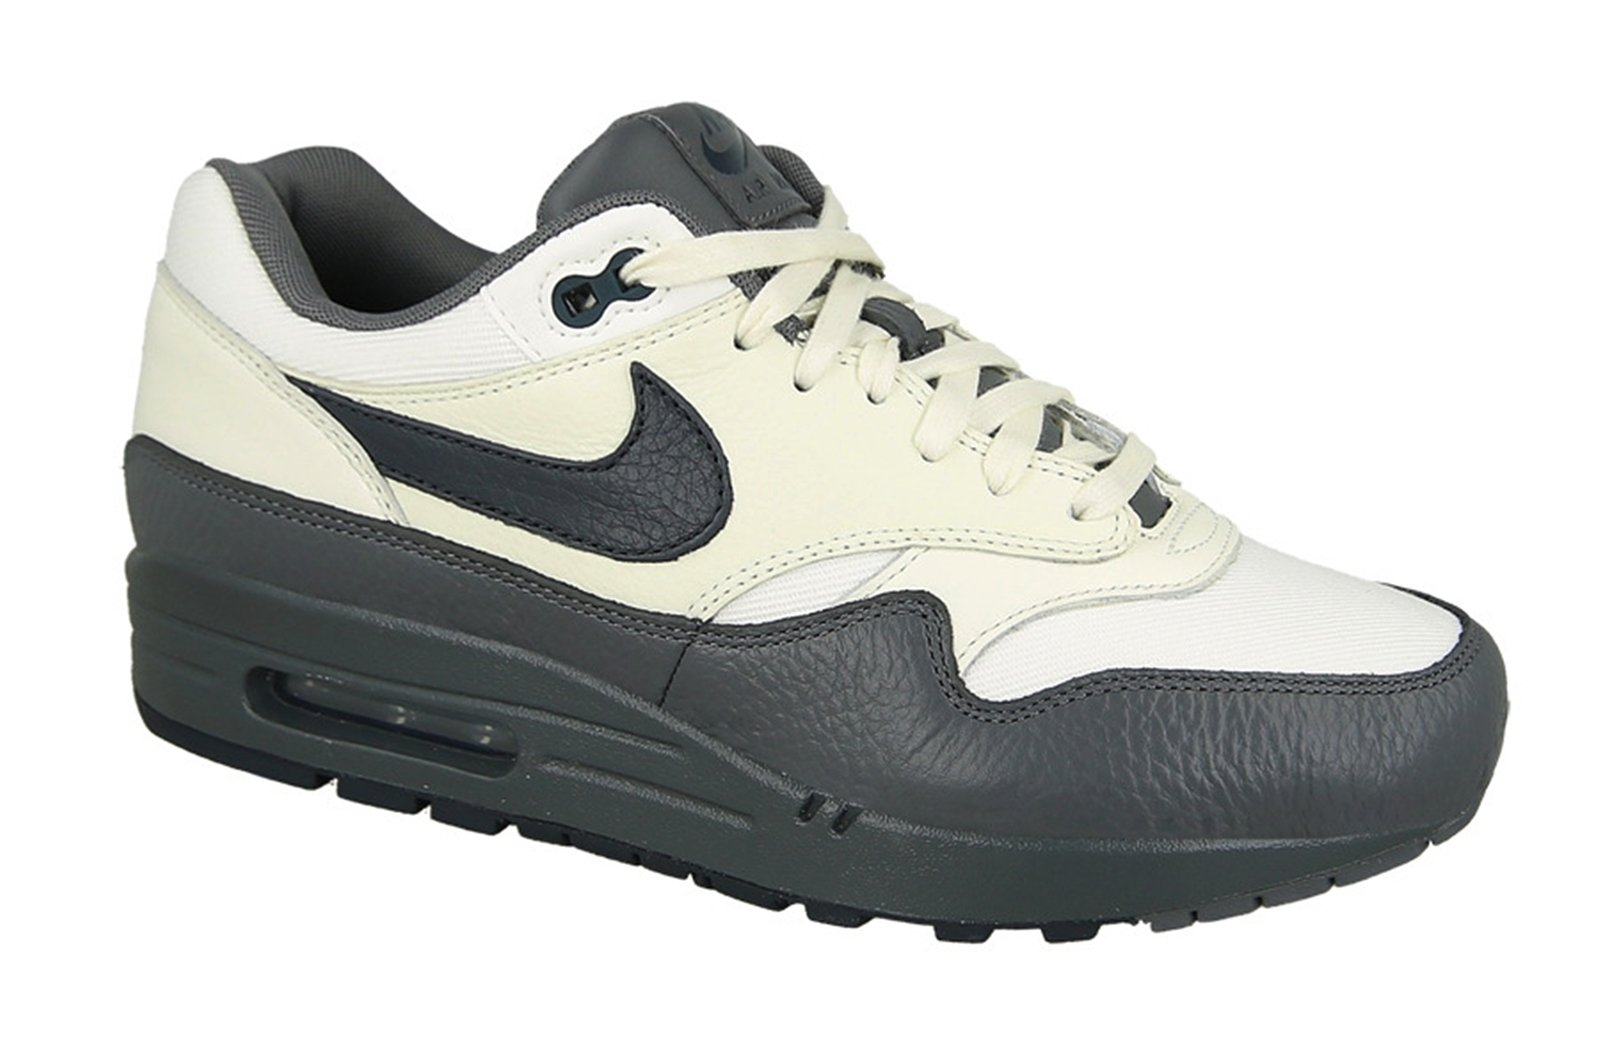 hot sale online 32f78 e2823 Galleon - NIKE Air Max 1 Premium Men s Running Shoes Sail Dark Obsidian-Dark  Grey 875844-100 (10 D(M) US)